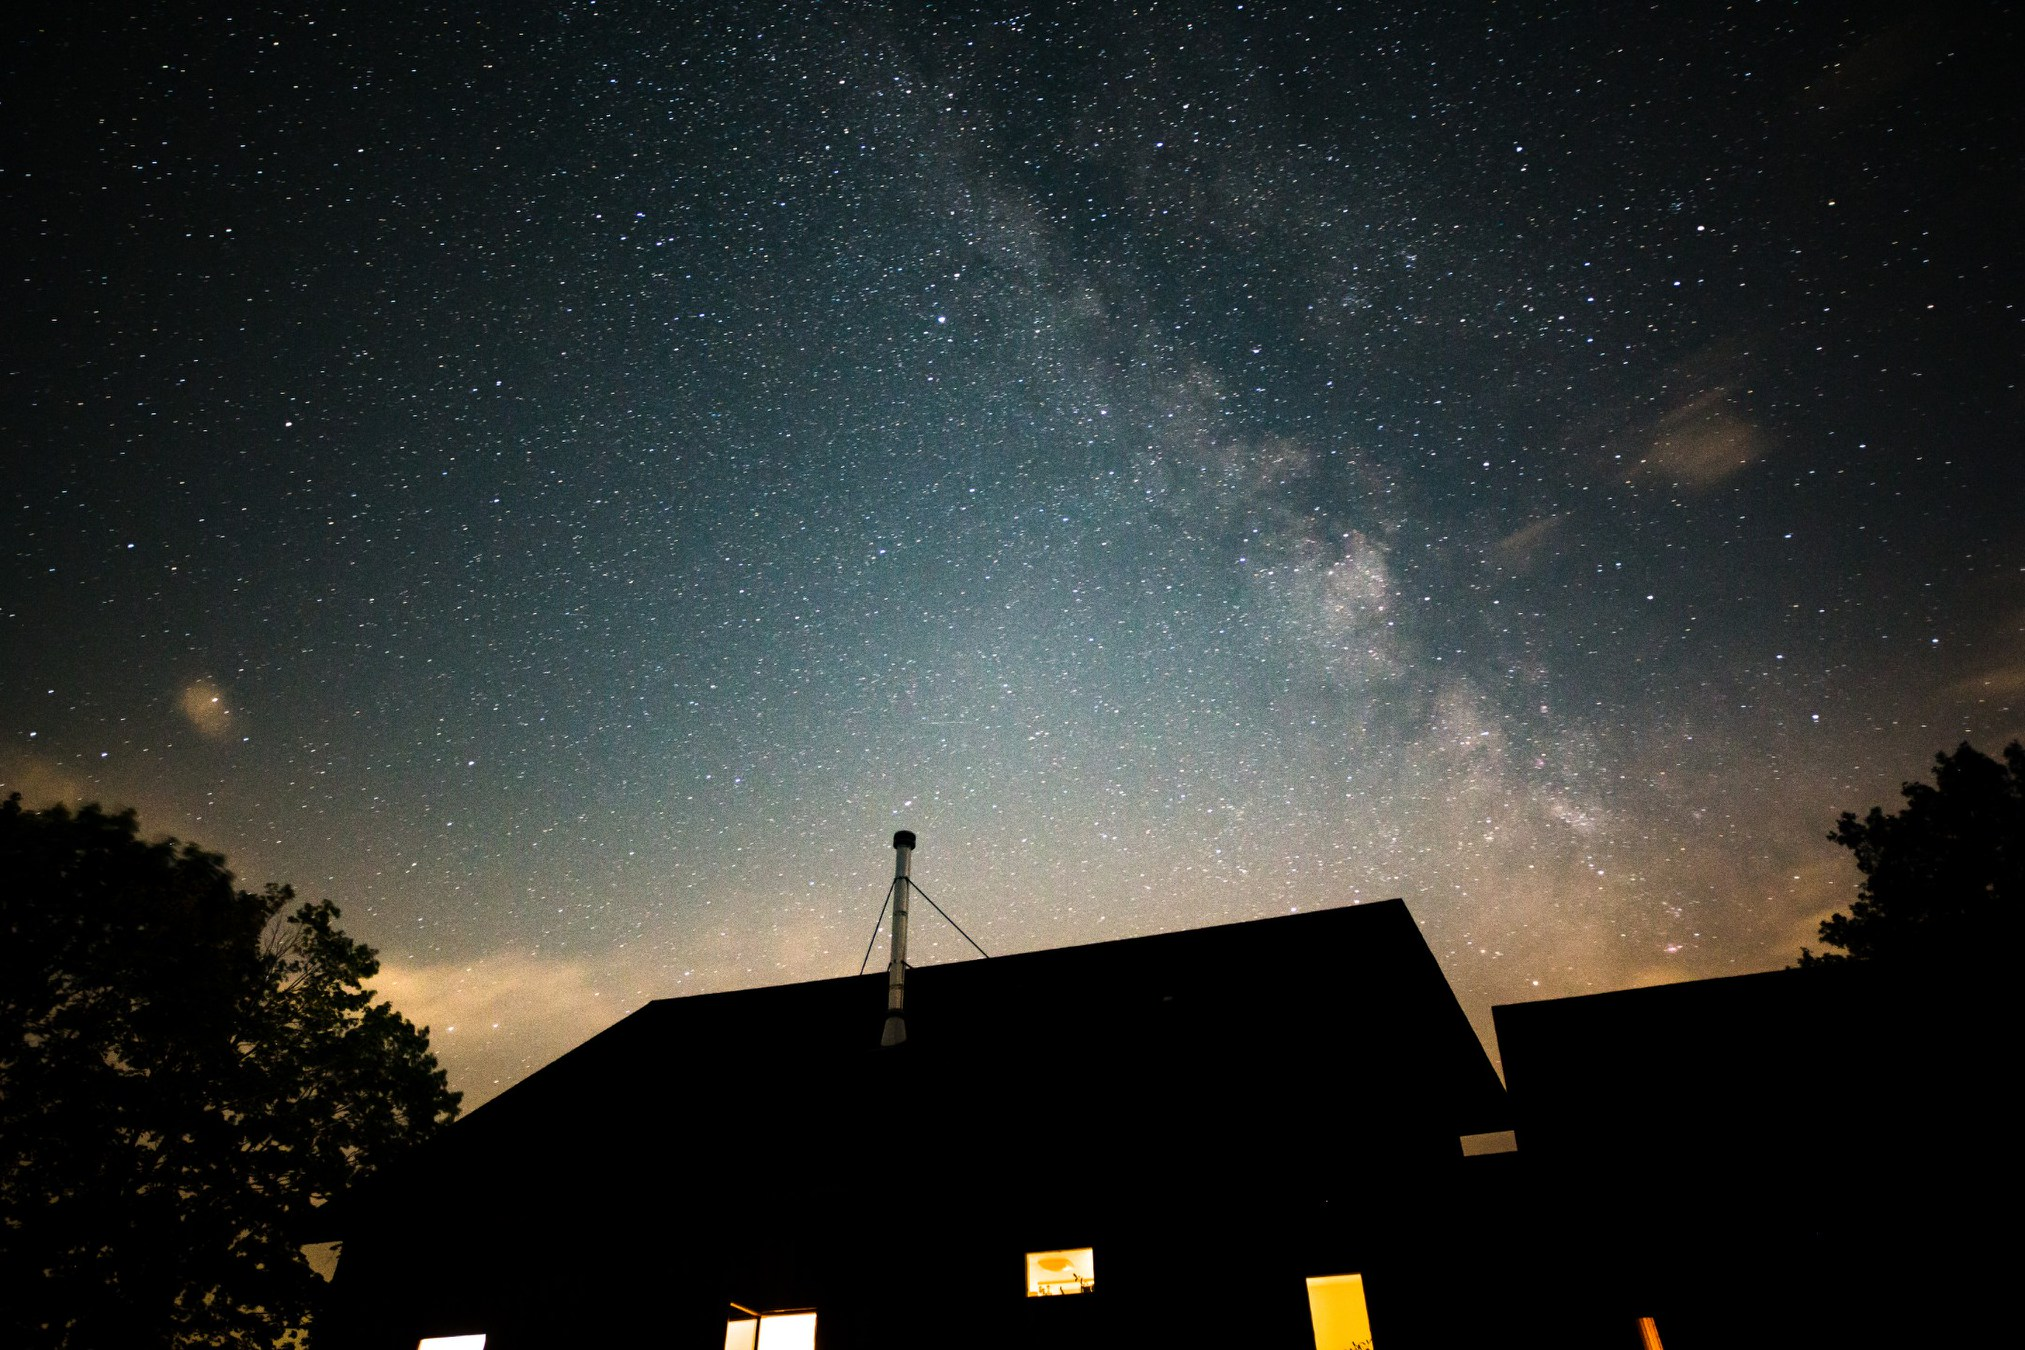 Completely magical photo by Andy Heist of the Milky Way above Rachel's house on the night of the solar eclipse.